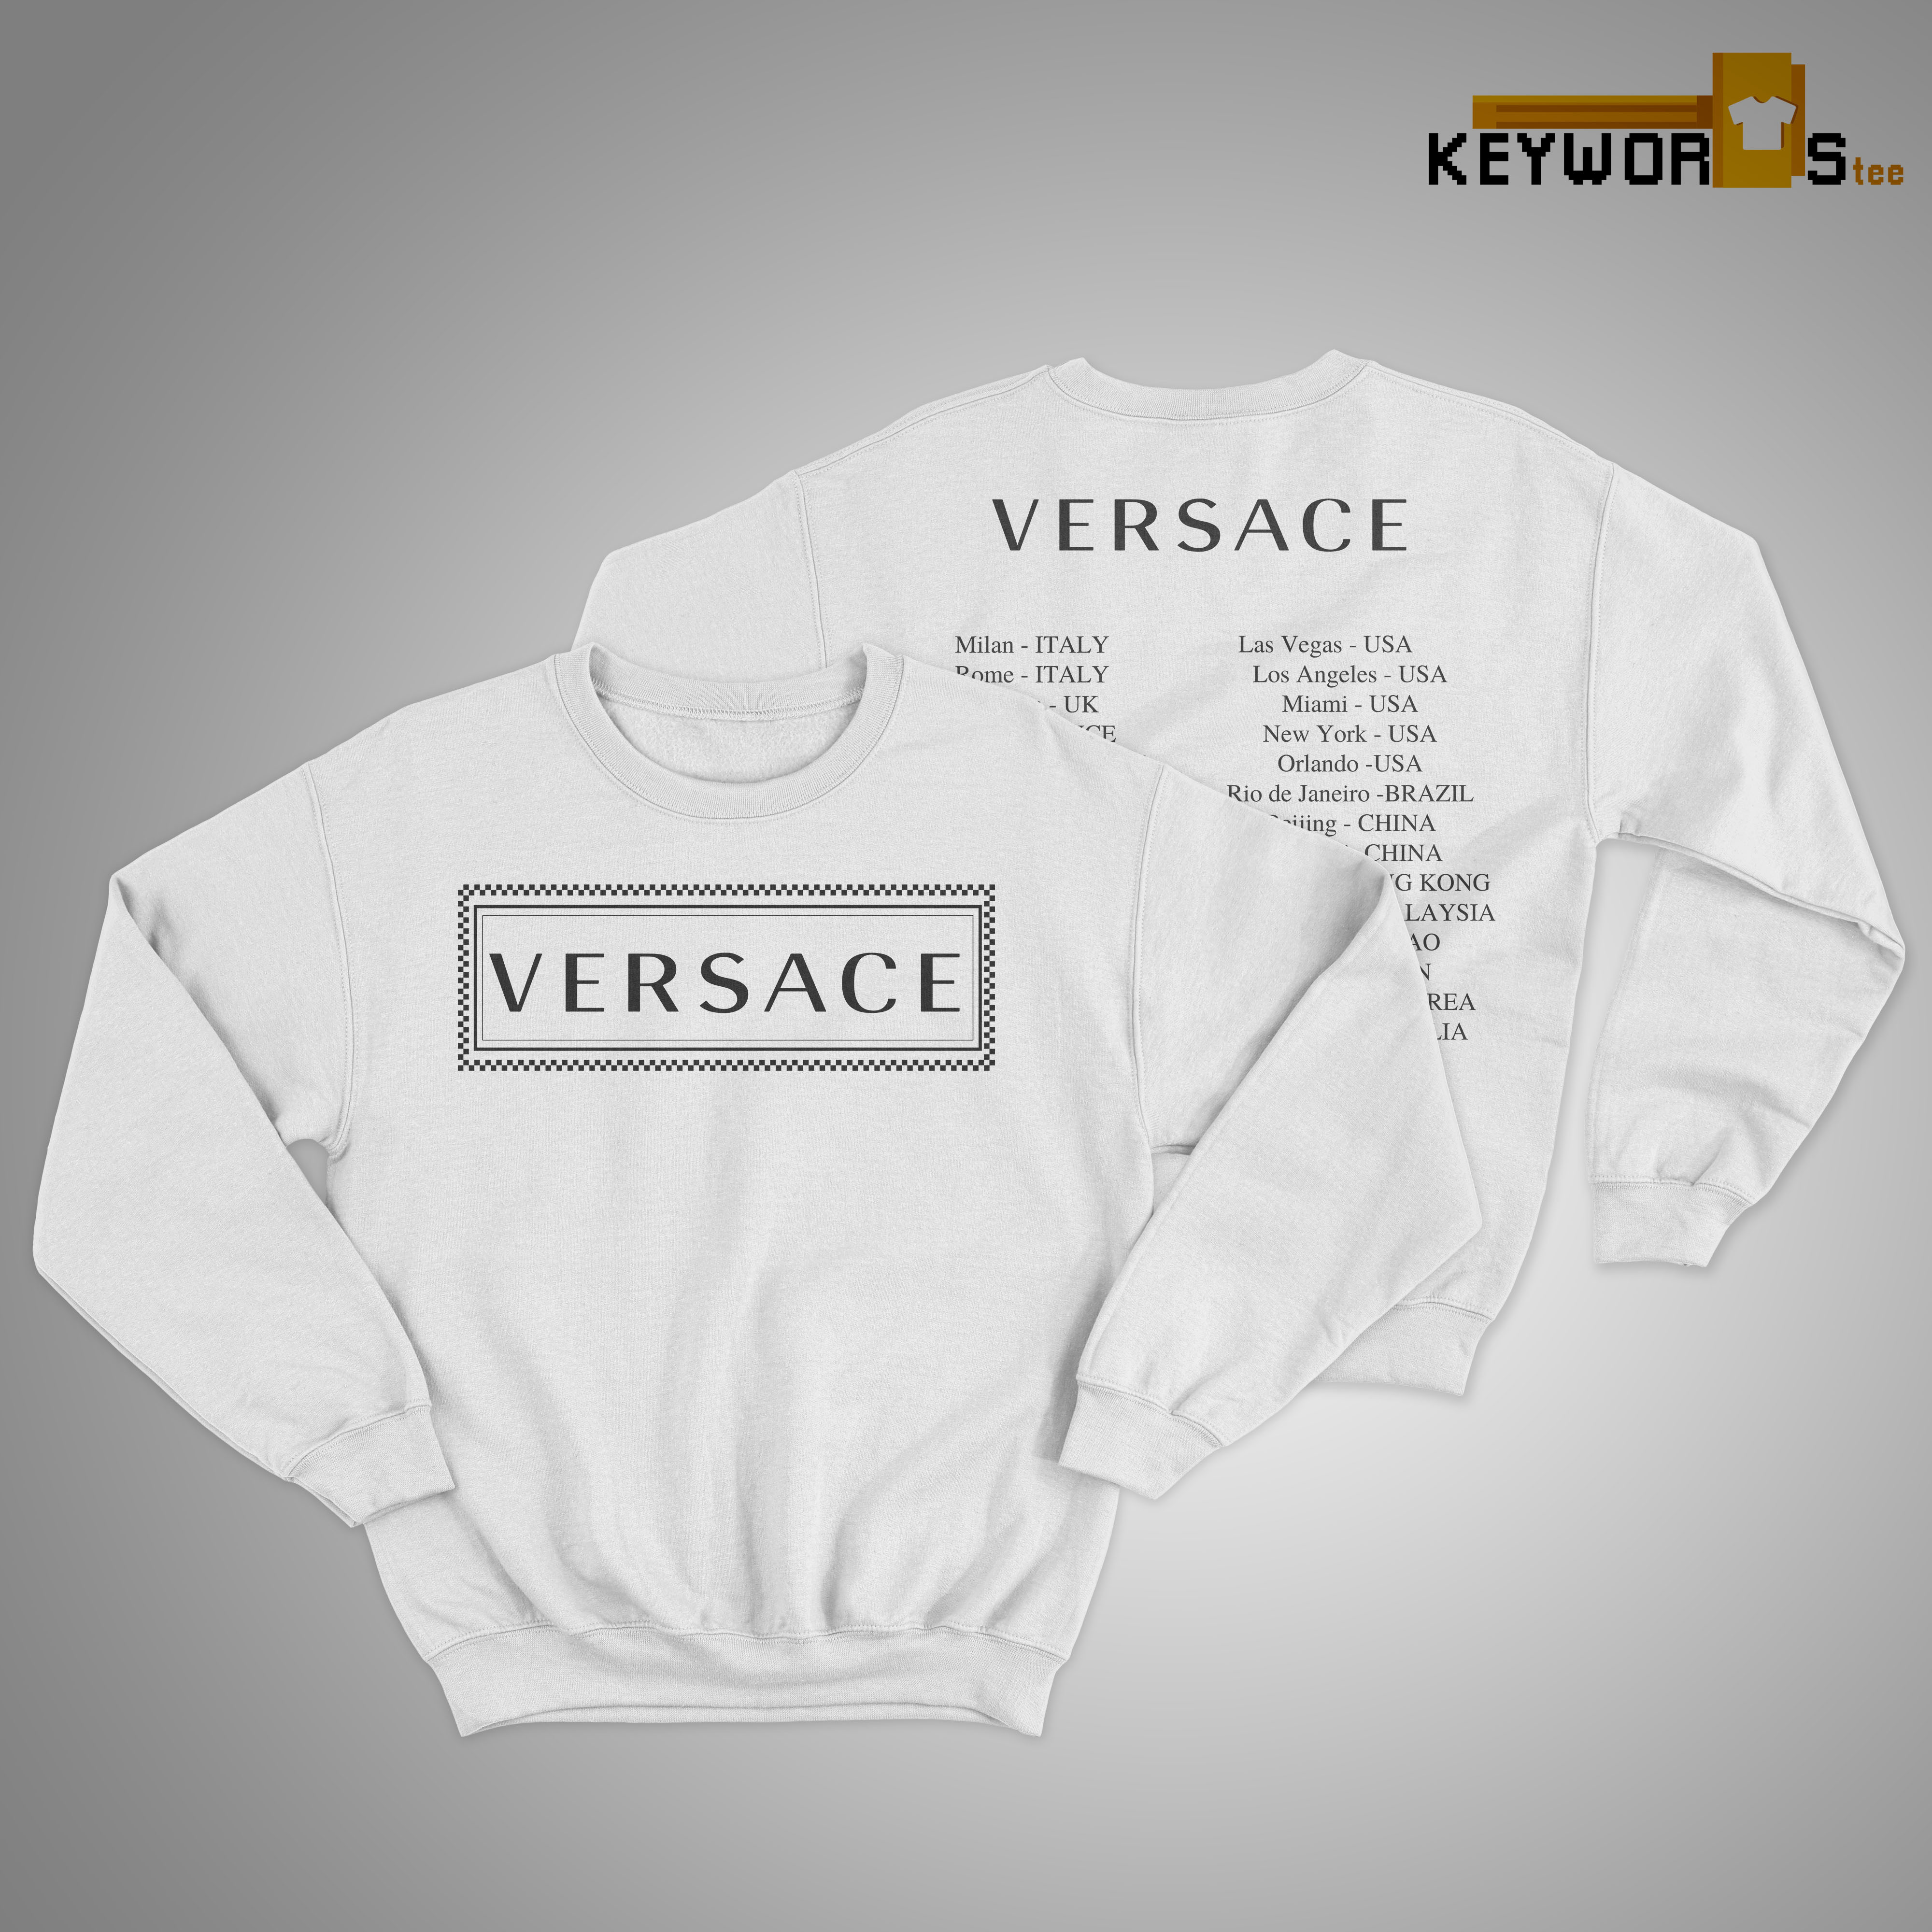 Versace Sweater Controversy